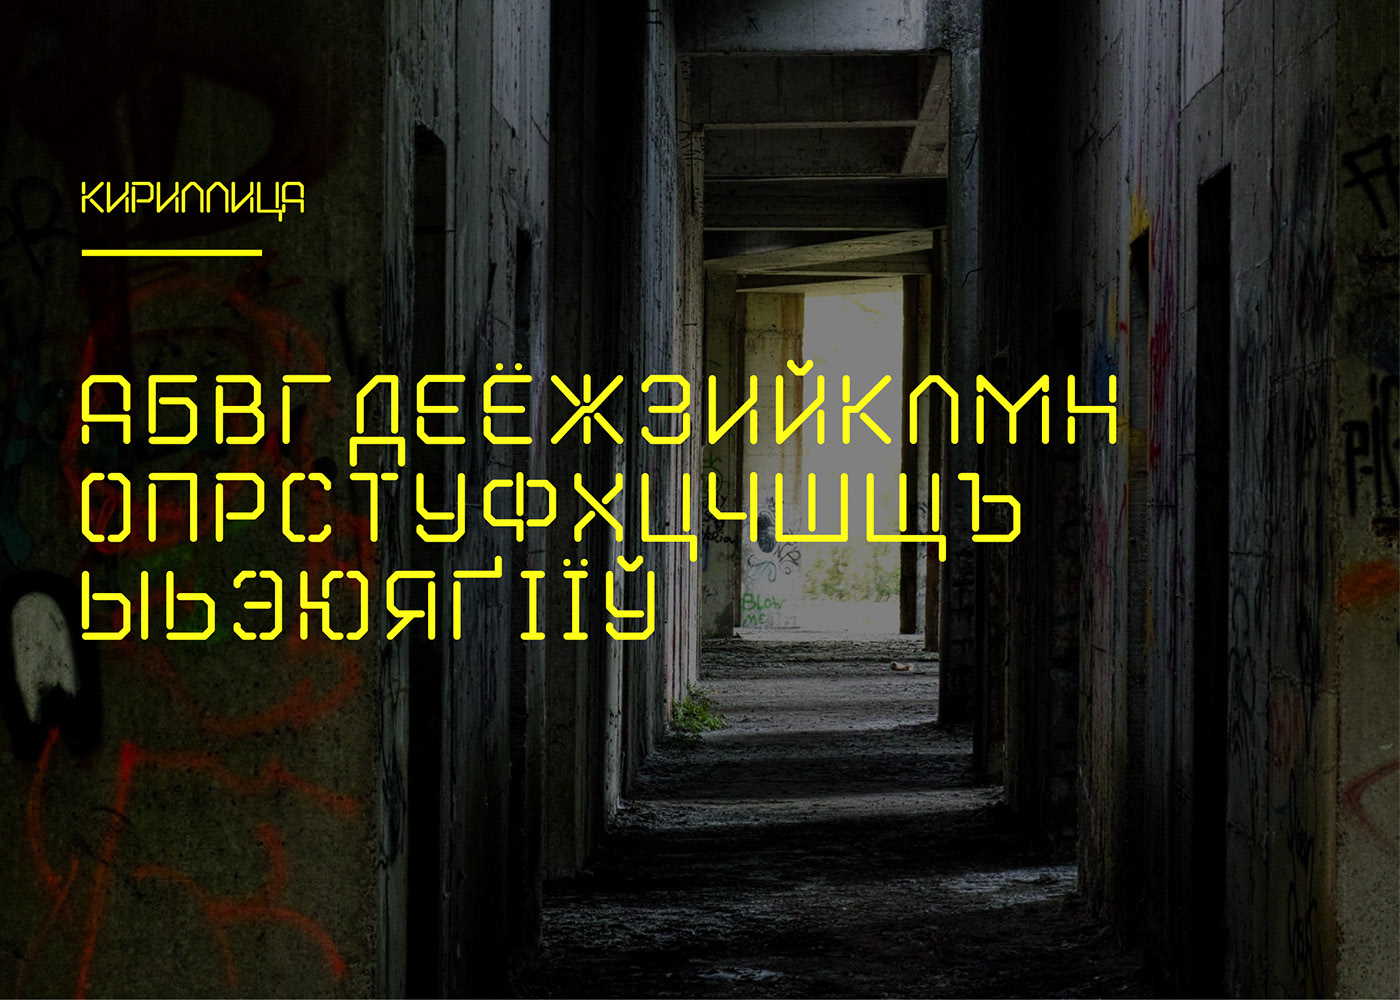 free font Typeface stencil grid download letters headings logos posters Display Cyrillic Russia ukraine belarus